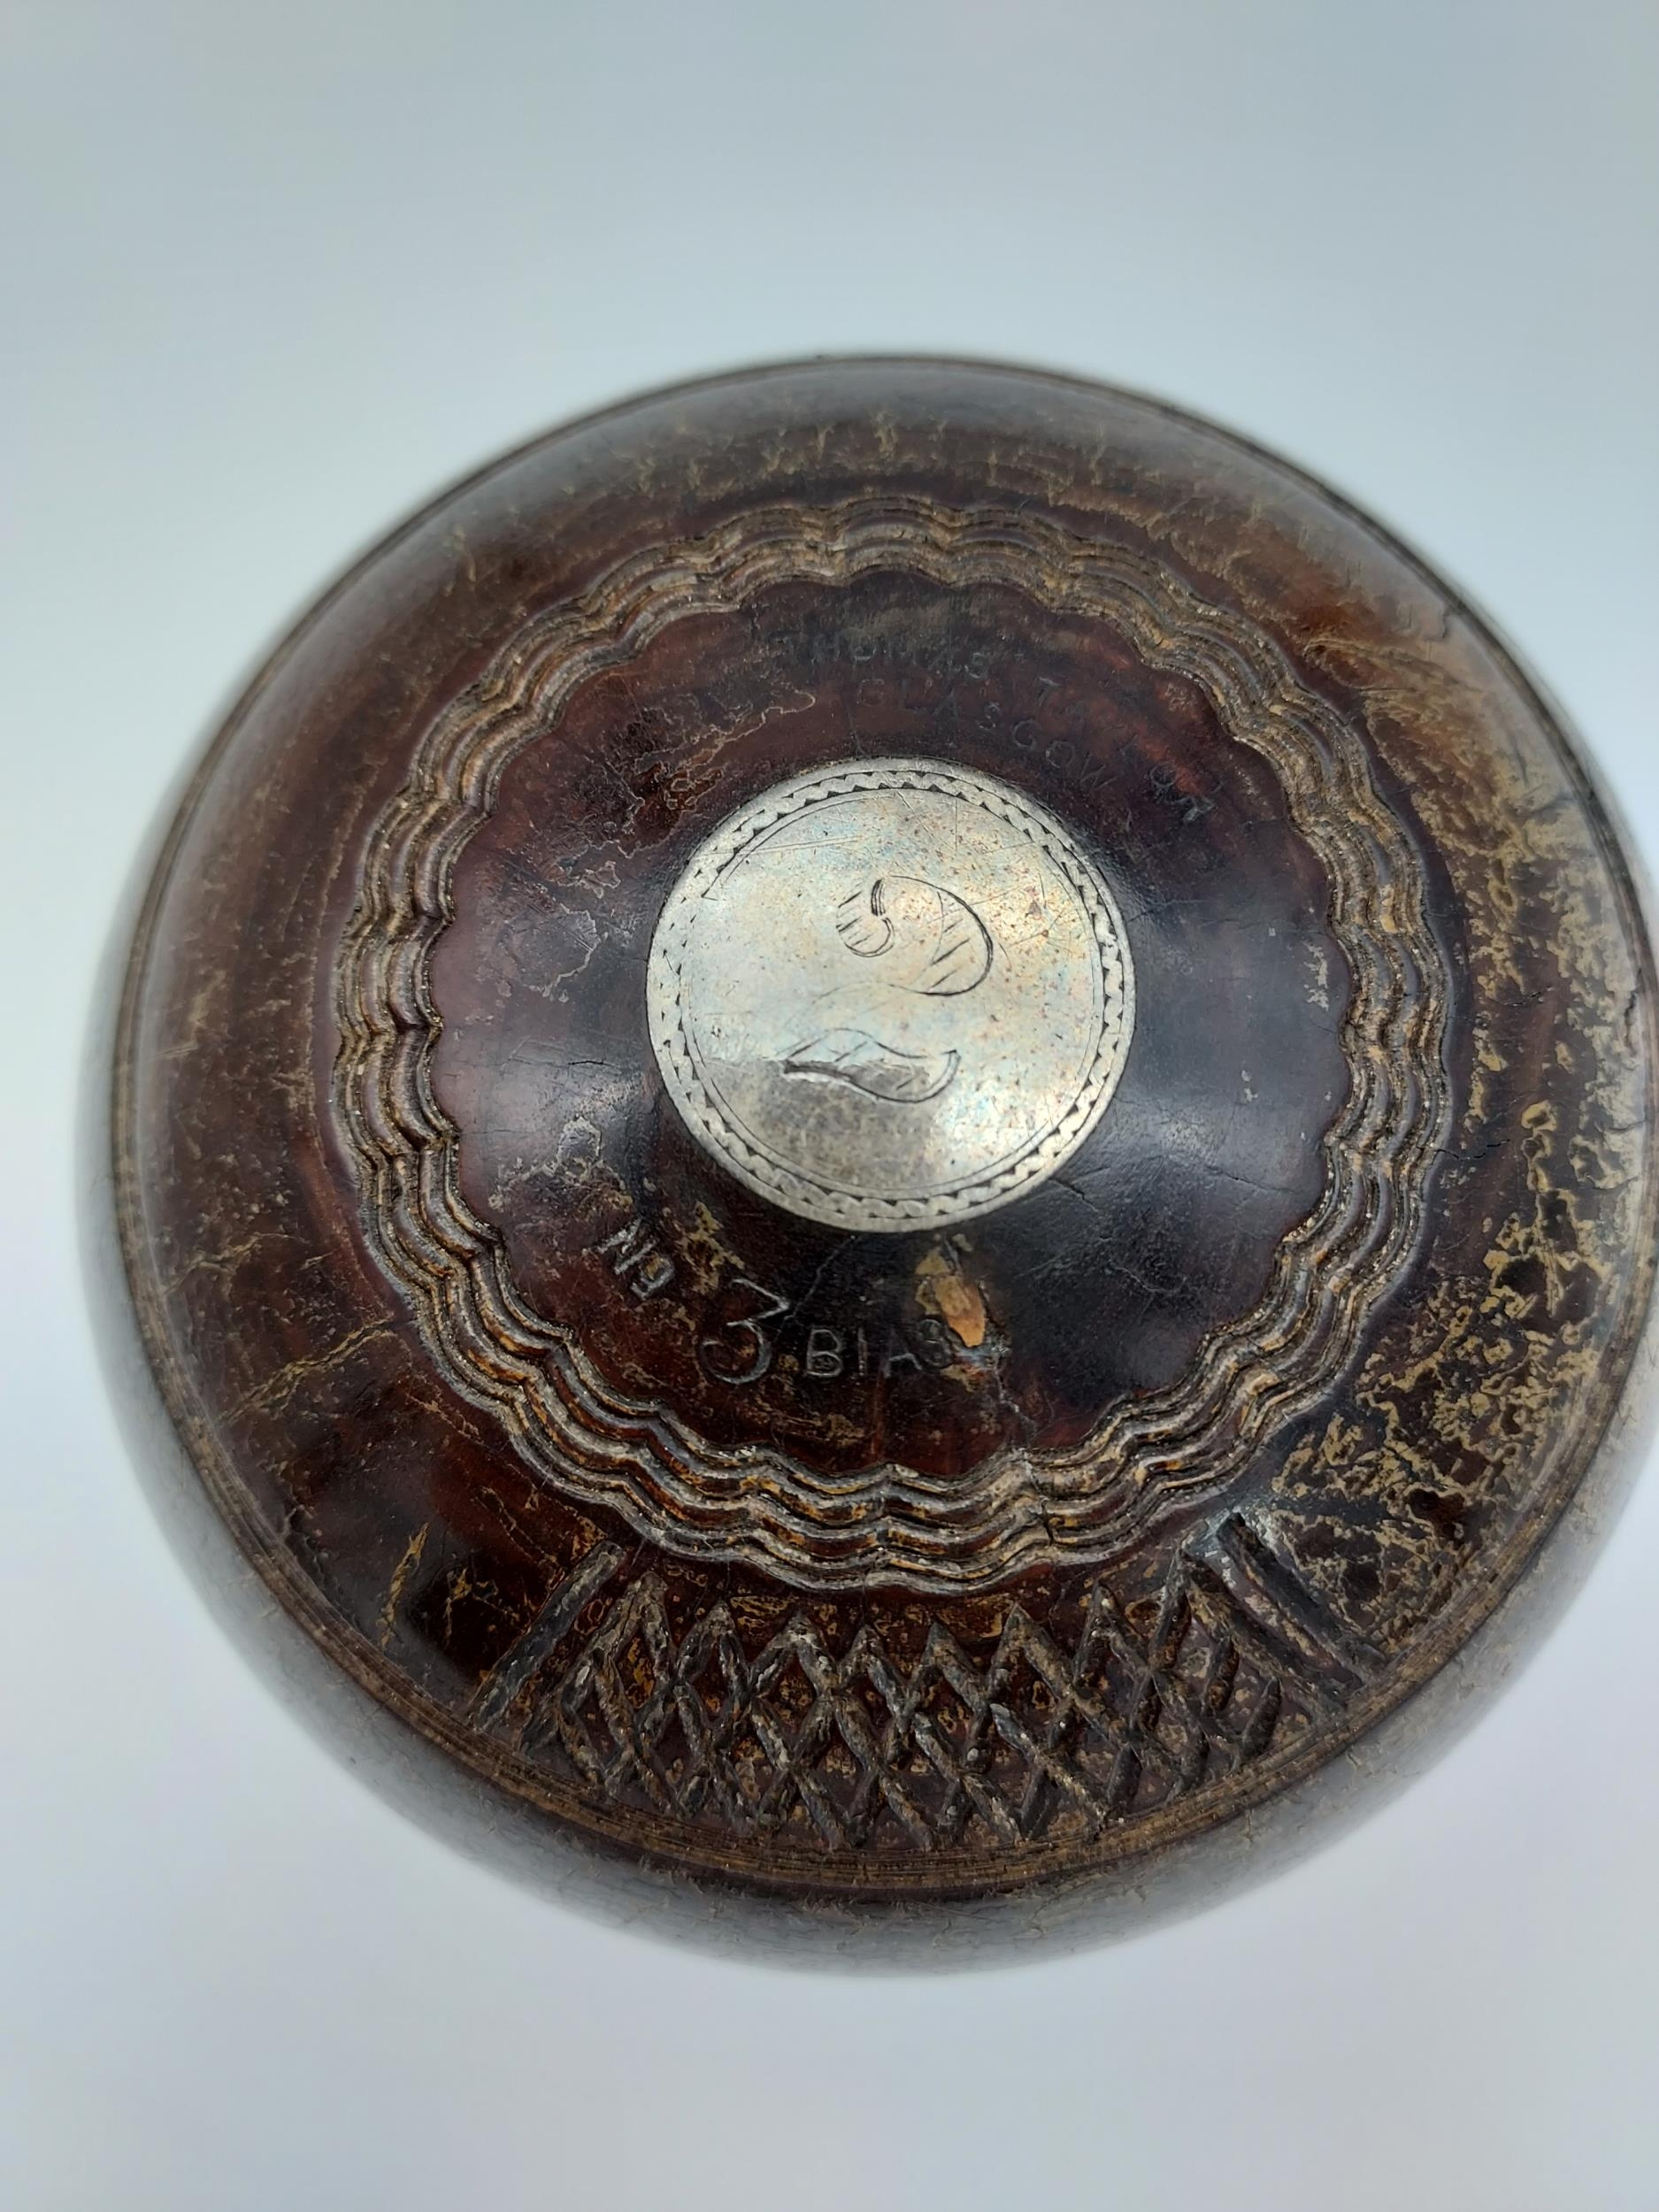 Antique Thomas Taylor Glasgow wooden presentation bowl with silver mounts. - Image 6 of 8